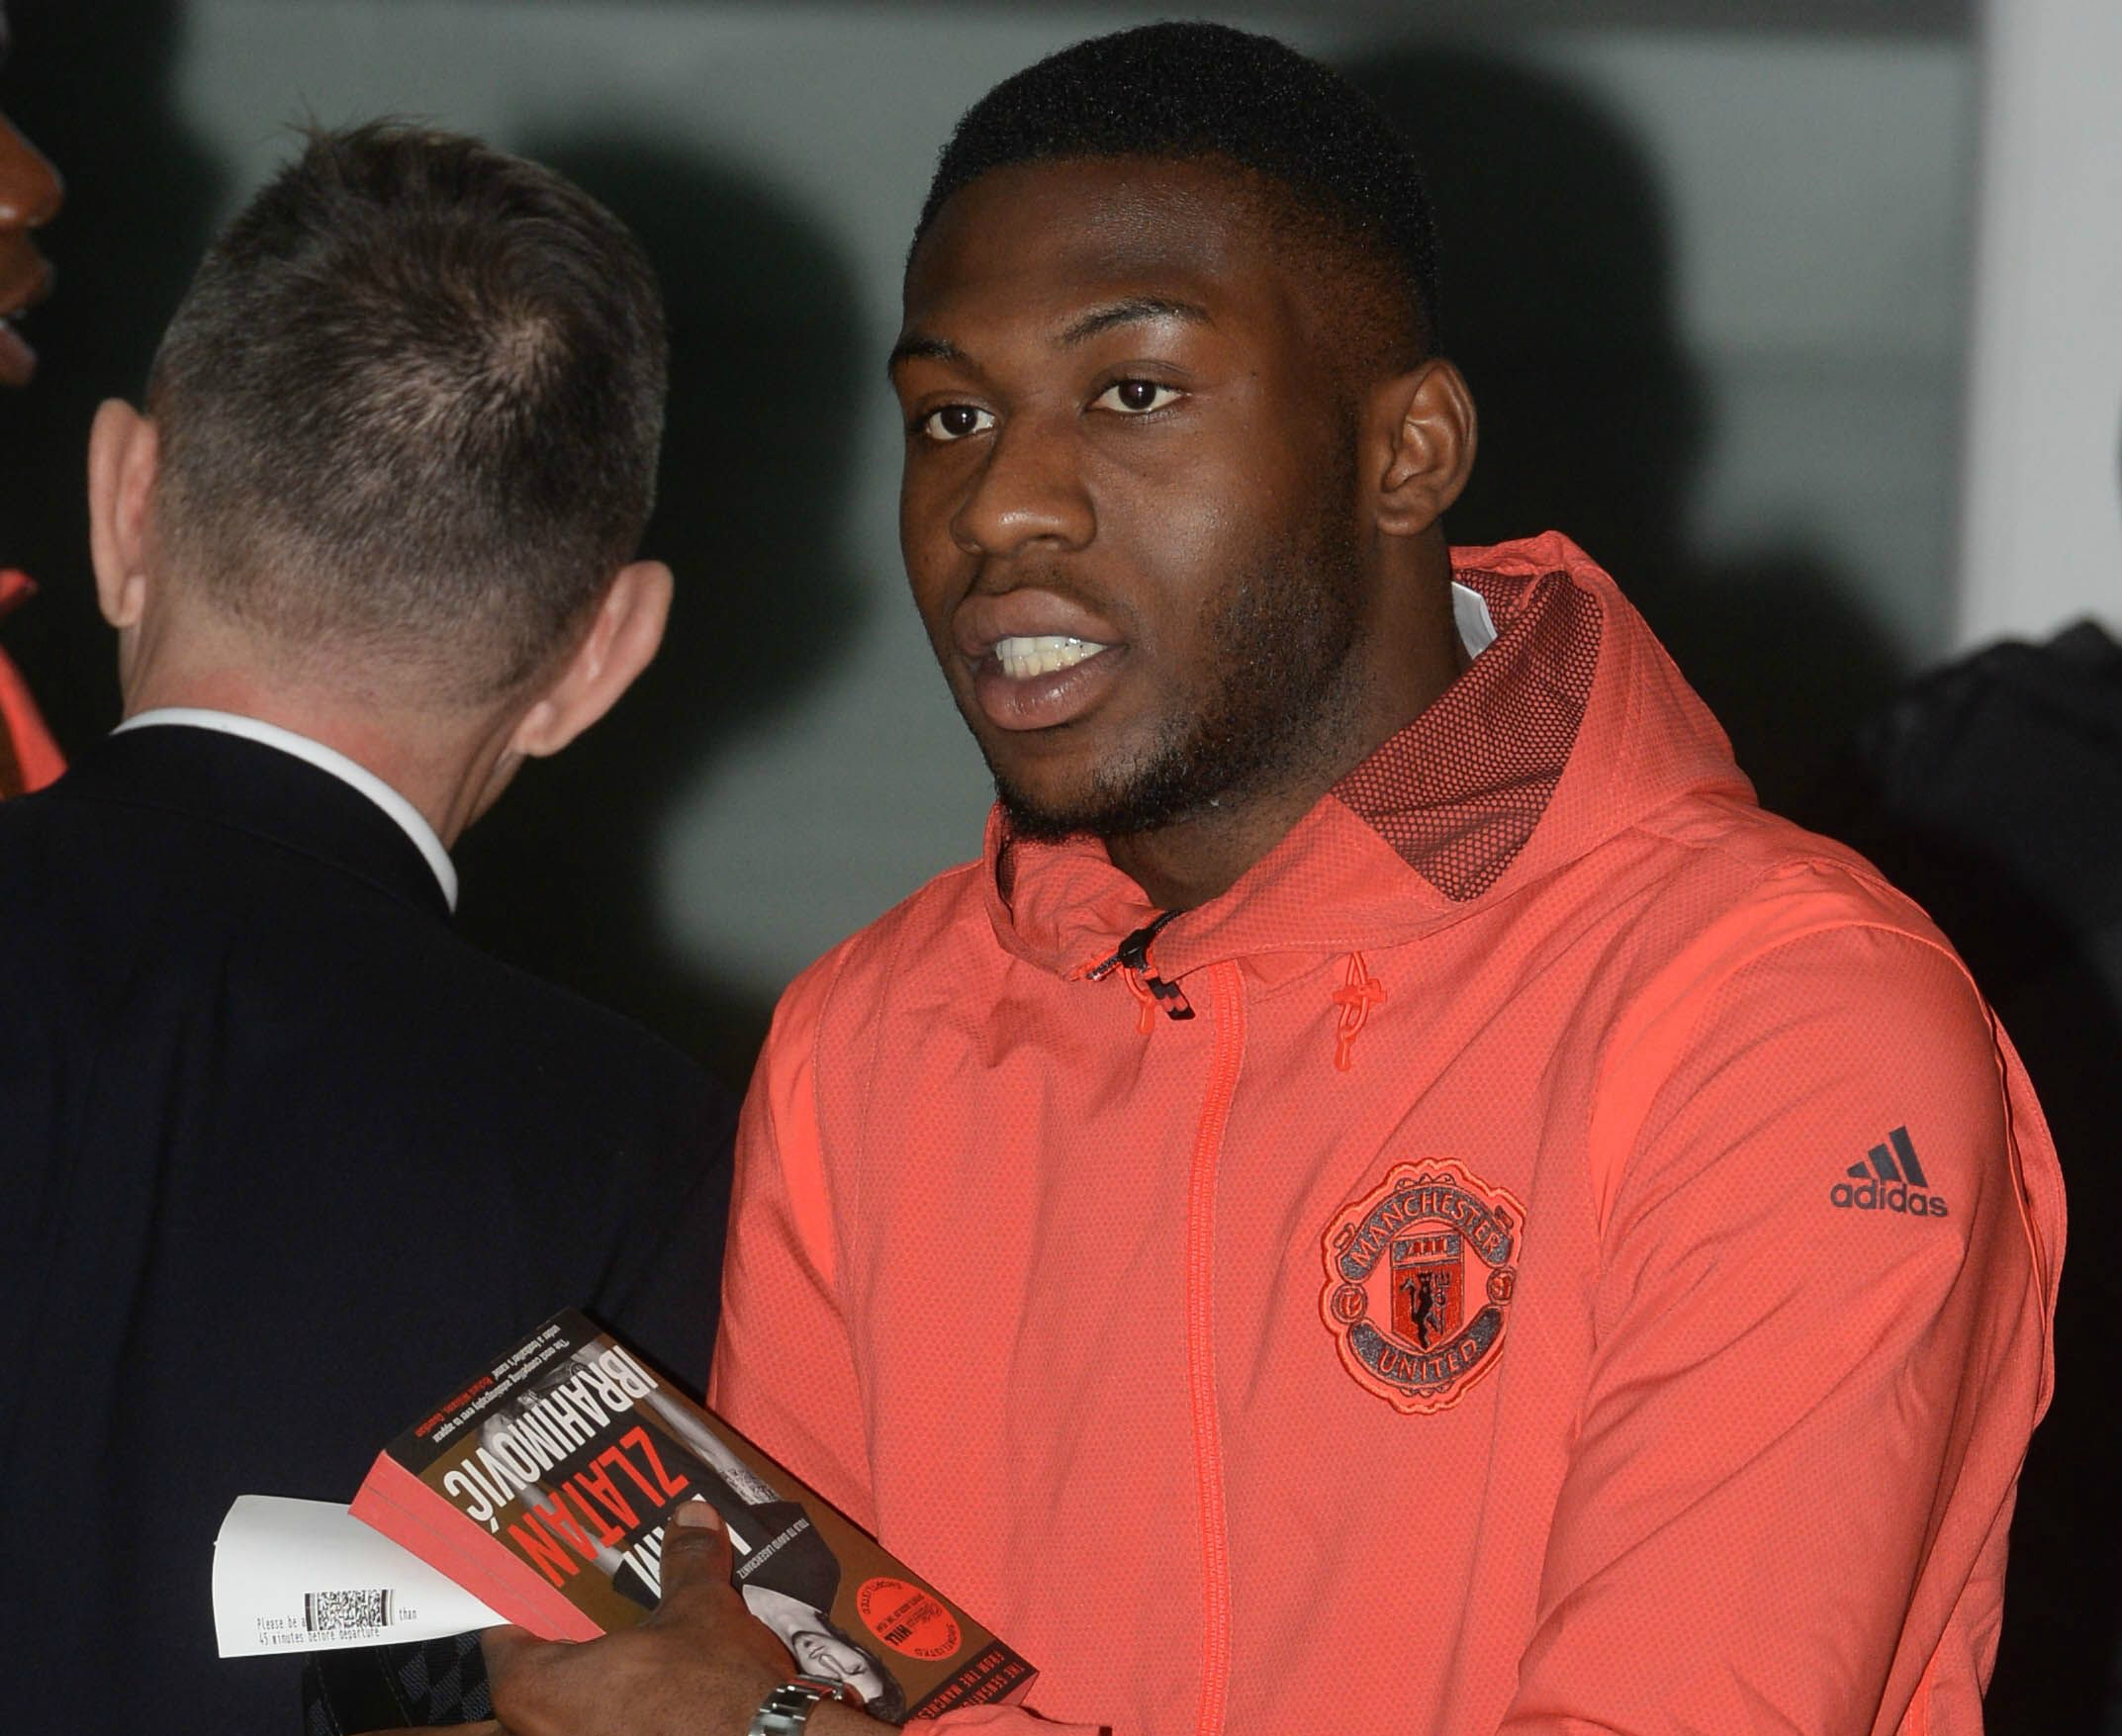 Manchester United star Timothy Fosu-Mensah spotted clutching Zlatan Ibrahimovic's autobiography